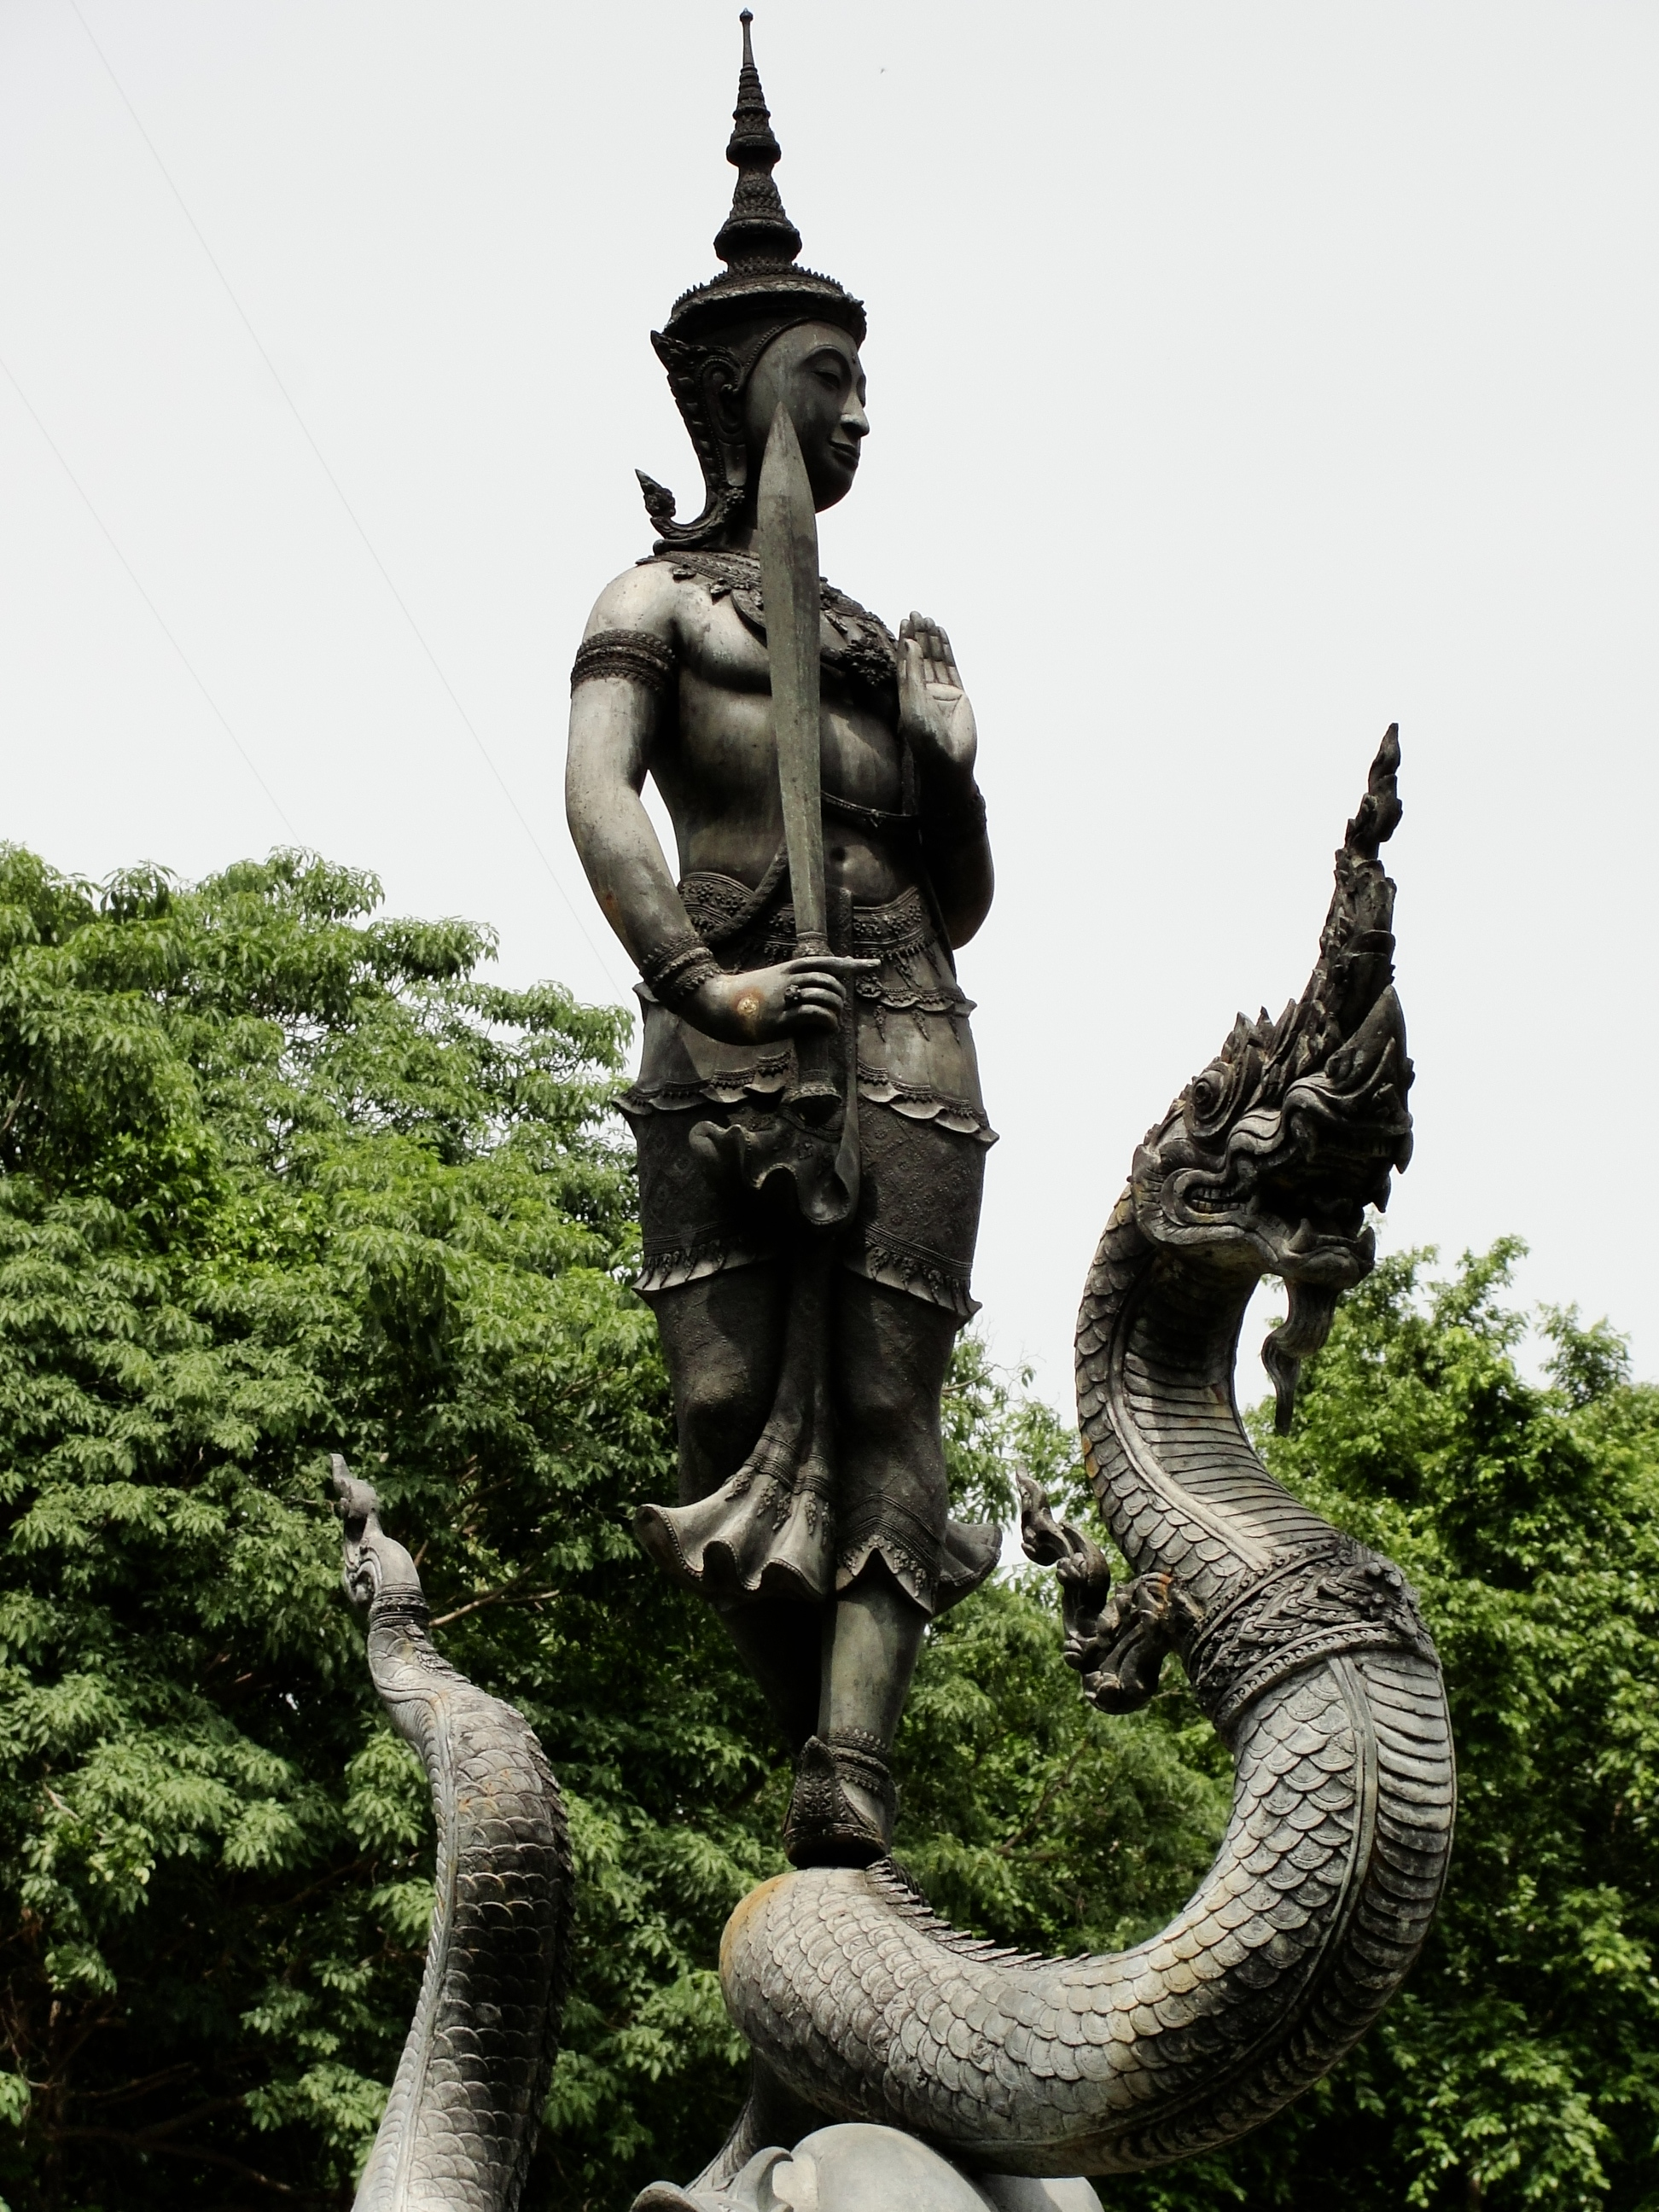 Varuna, known in Thailand as Phra Phirun, the god of rain, is the symbol of Kasetsart University in Bangkok. Photo taken on August 23, 2009.